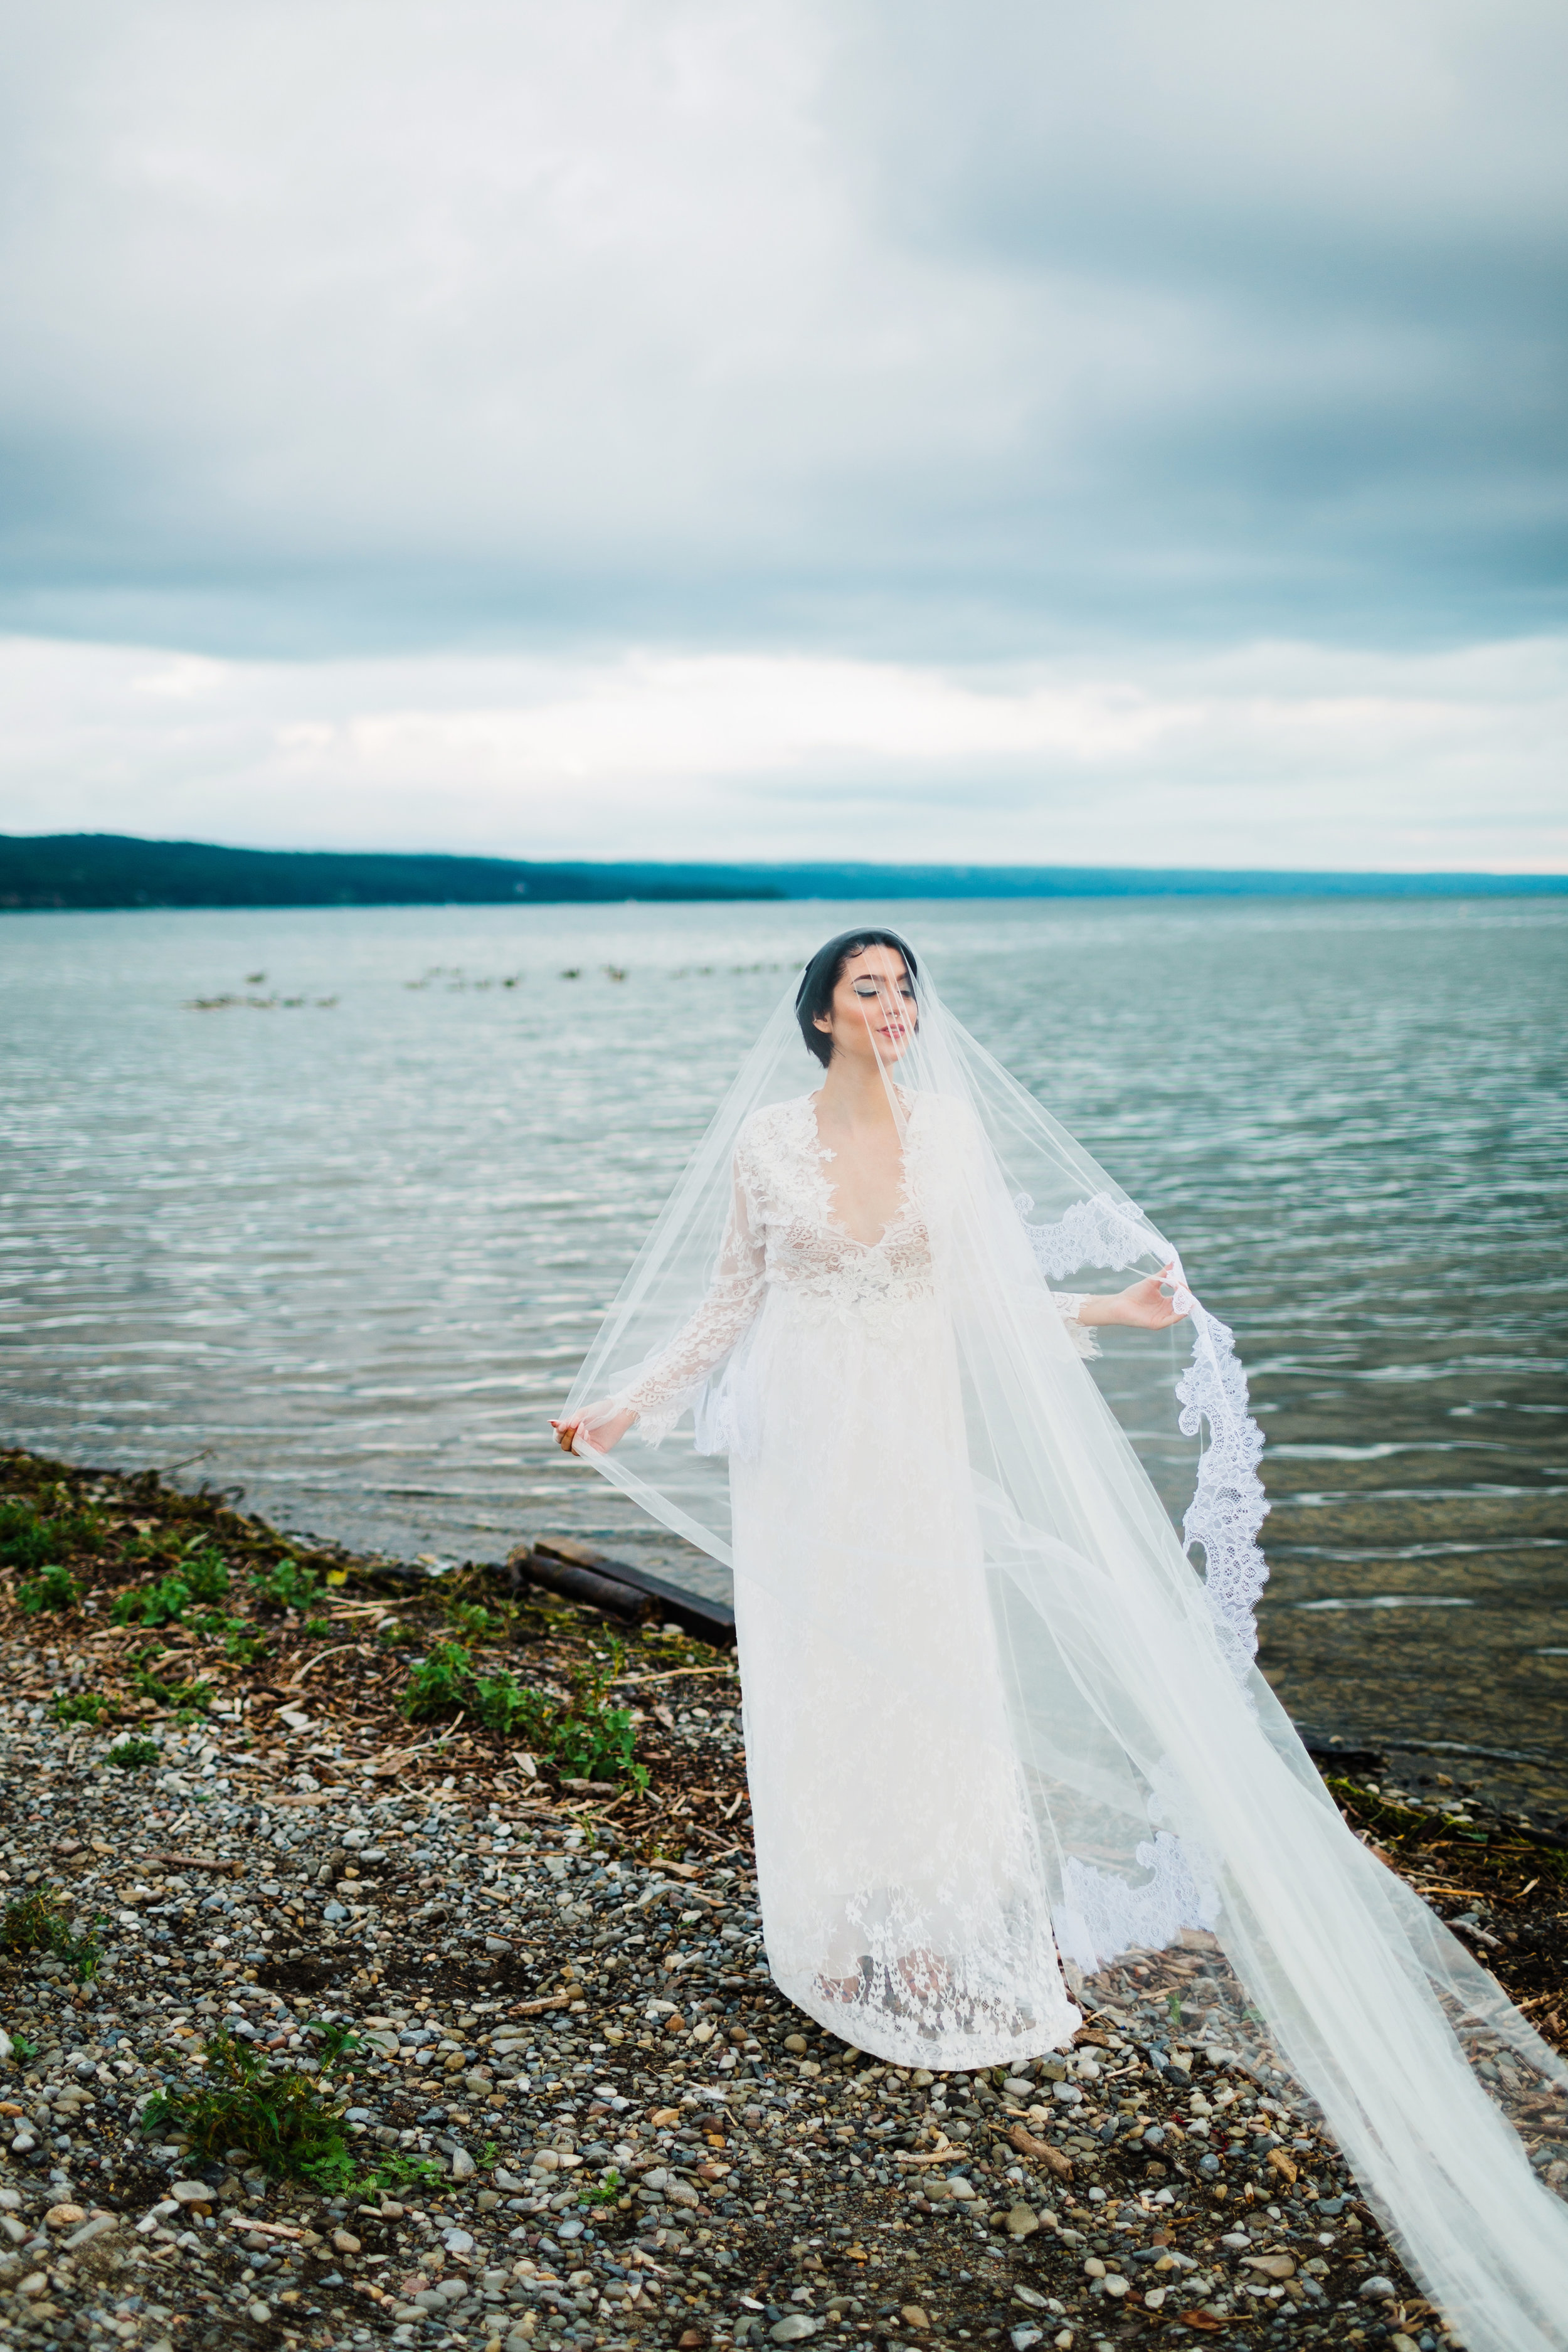 Ithaca Wedding Photography Leanne Rose Photography-6900 copy.jpg